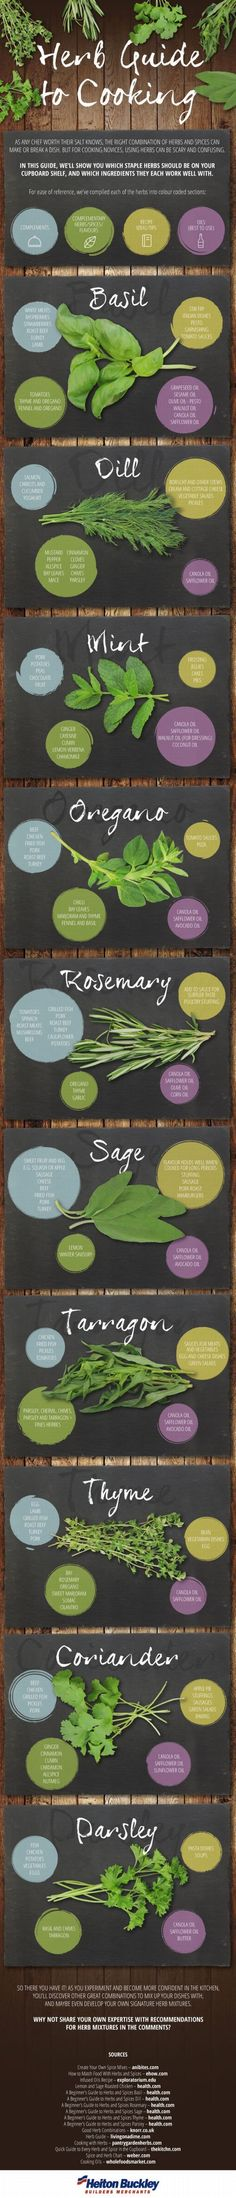 How to Pair Herbs with Foods